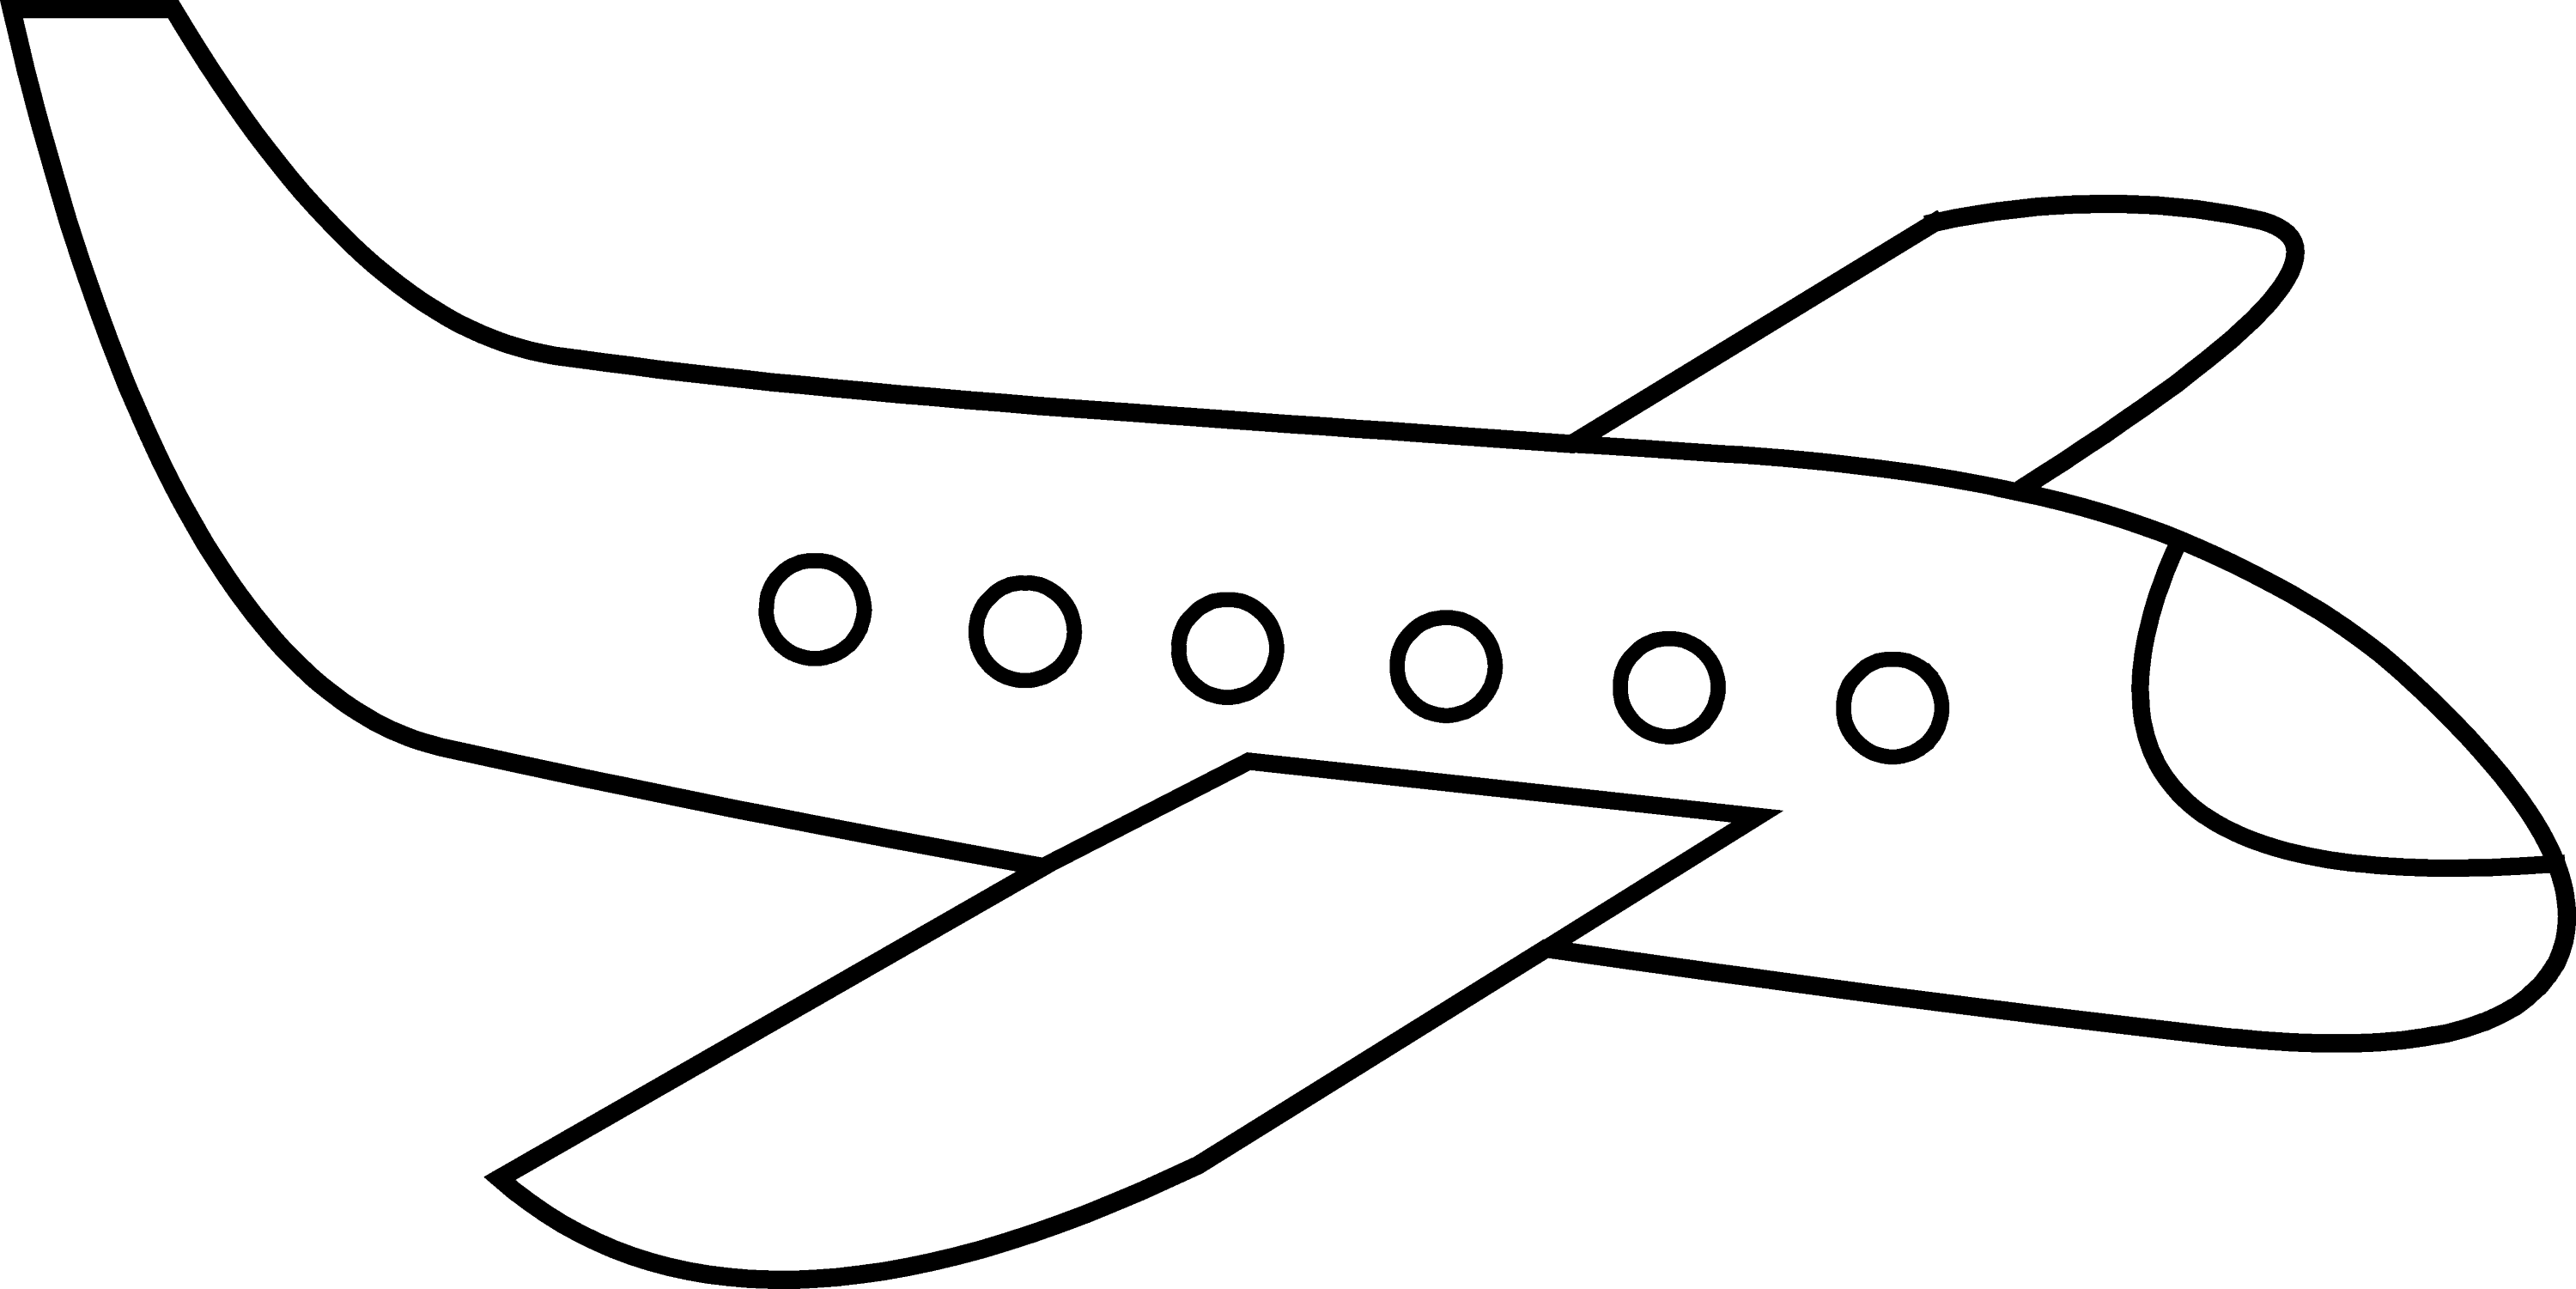 Cute Simple Airplane Line Art